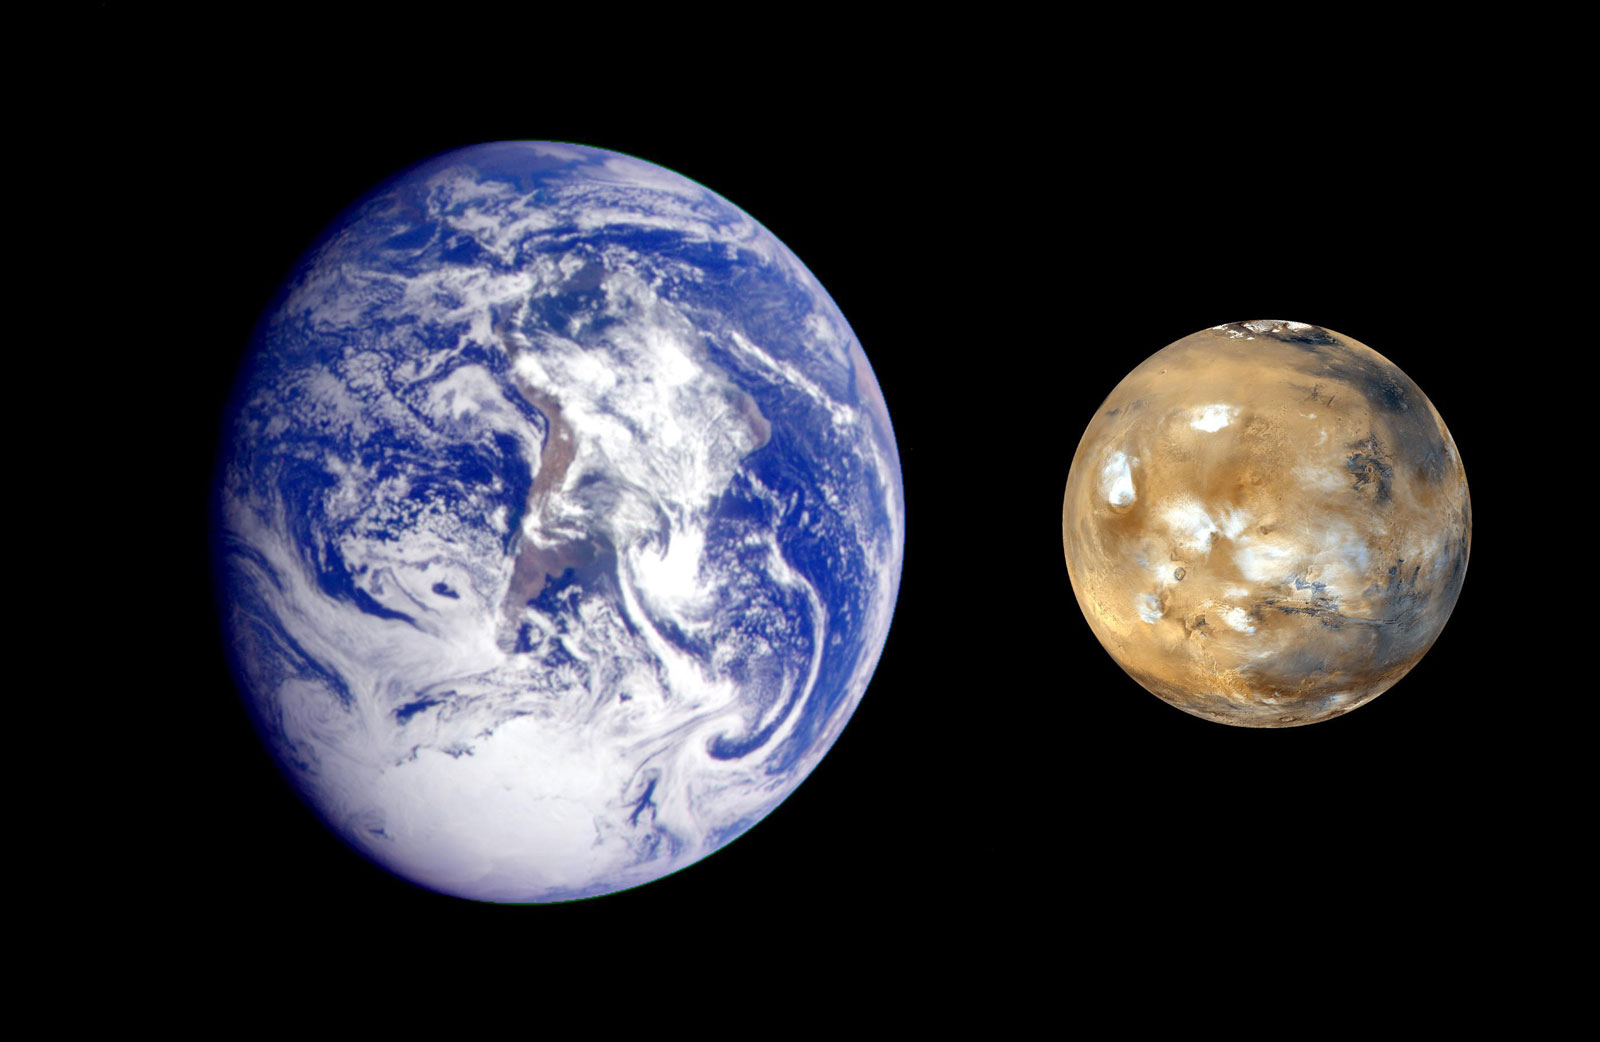 slide 4 - This composite image of Earth and Mars was created to allow viewers to gain a better understanding of the relative sizes of the two planets.